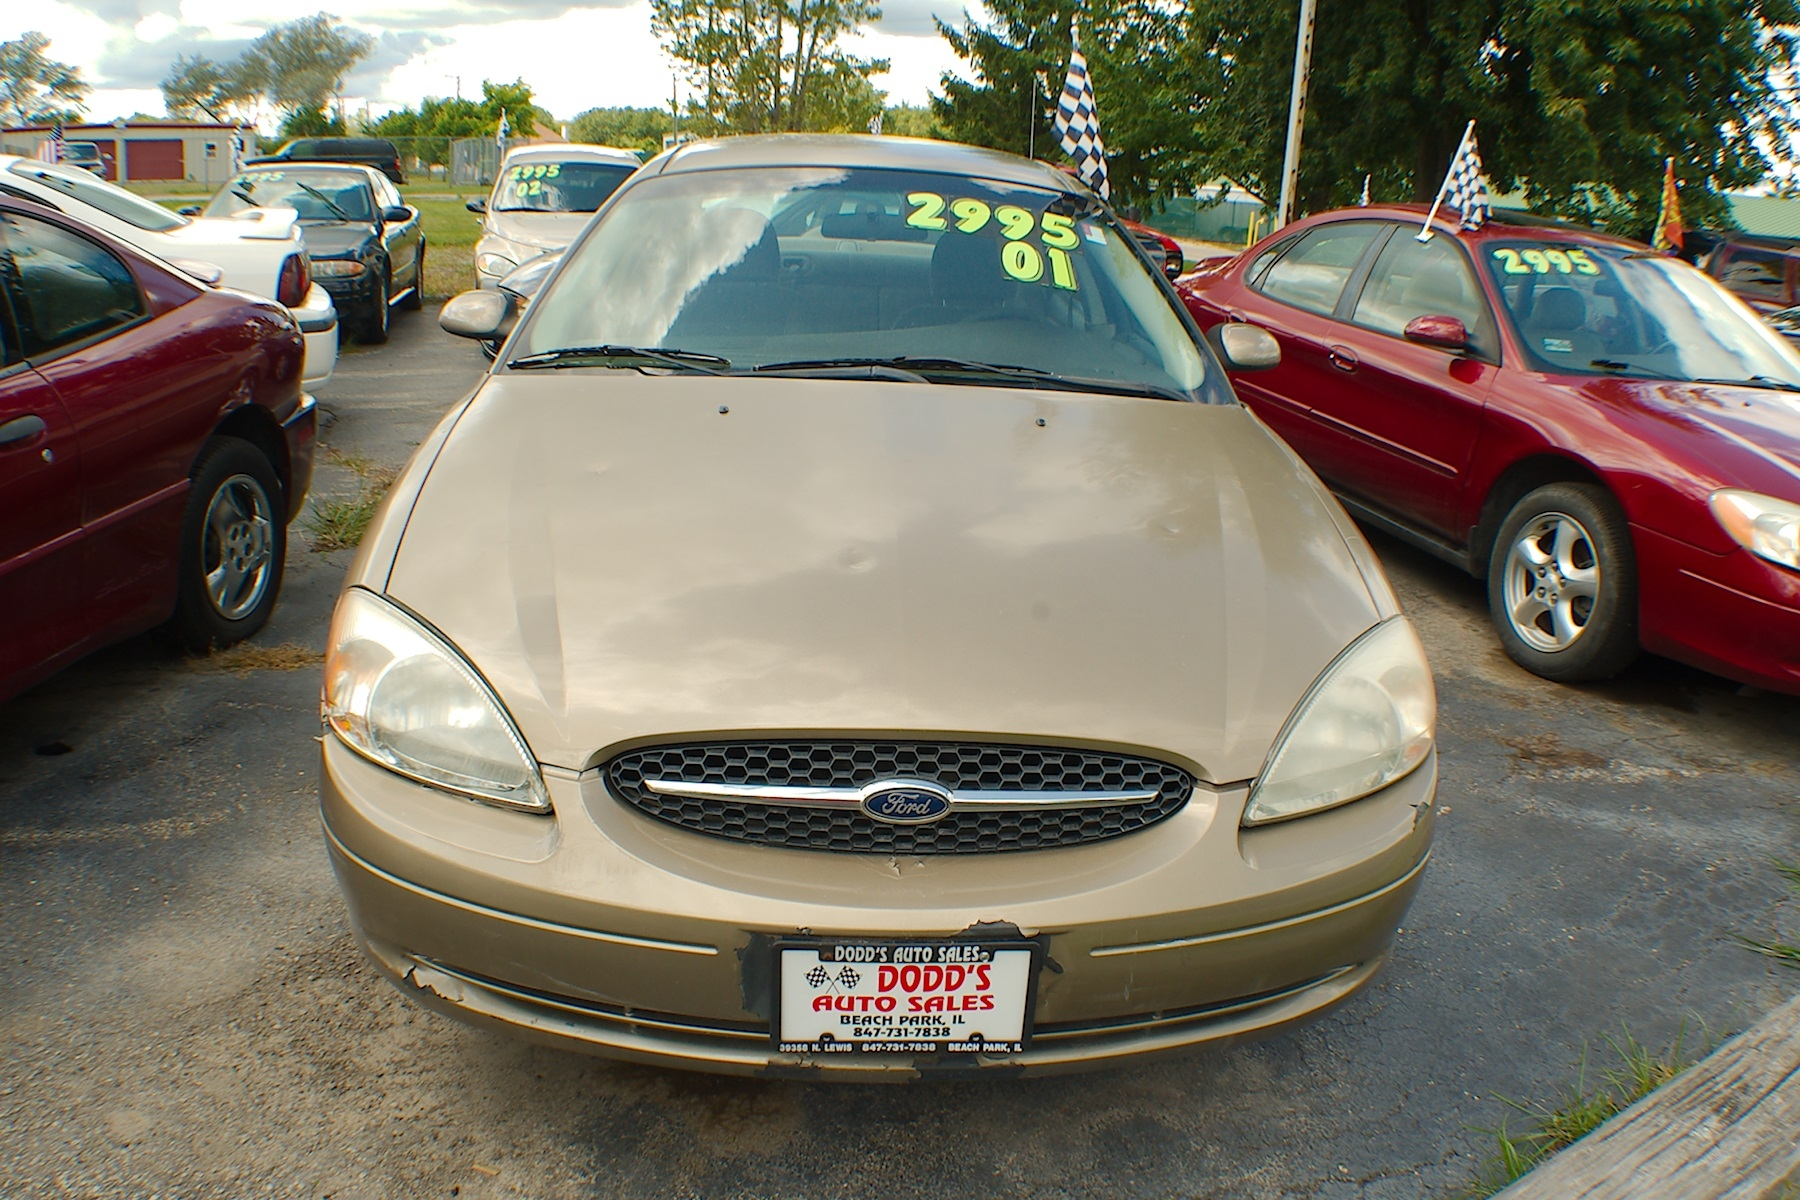 2001 Ford Taurus Sand Sedan Used Car Sale Gurnee Kenosha Mchenry Chicago Illinois